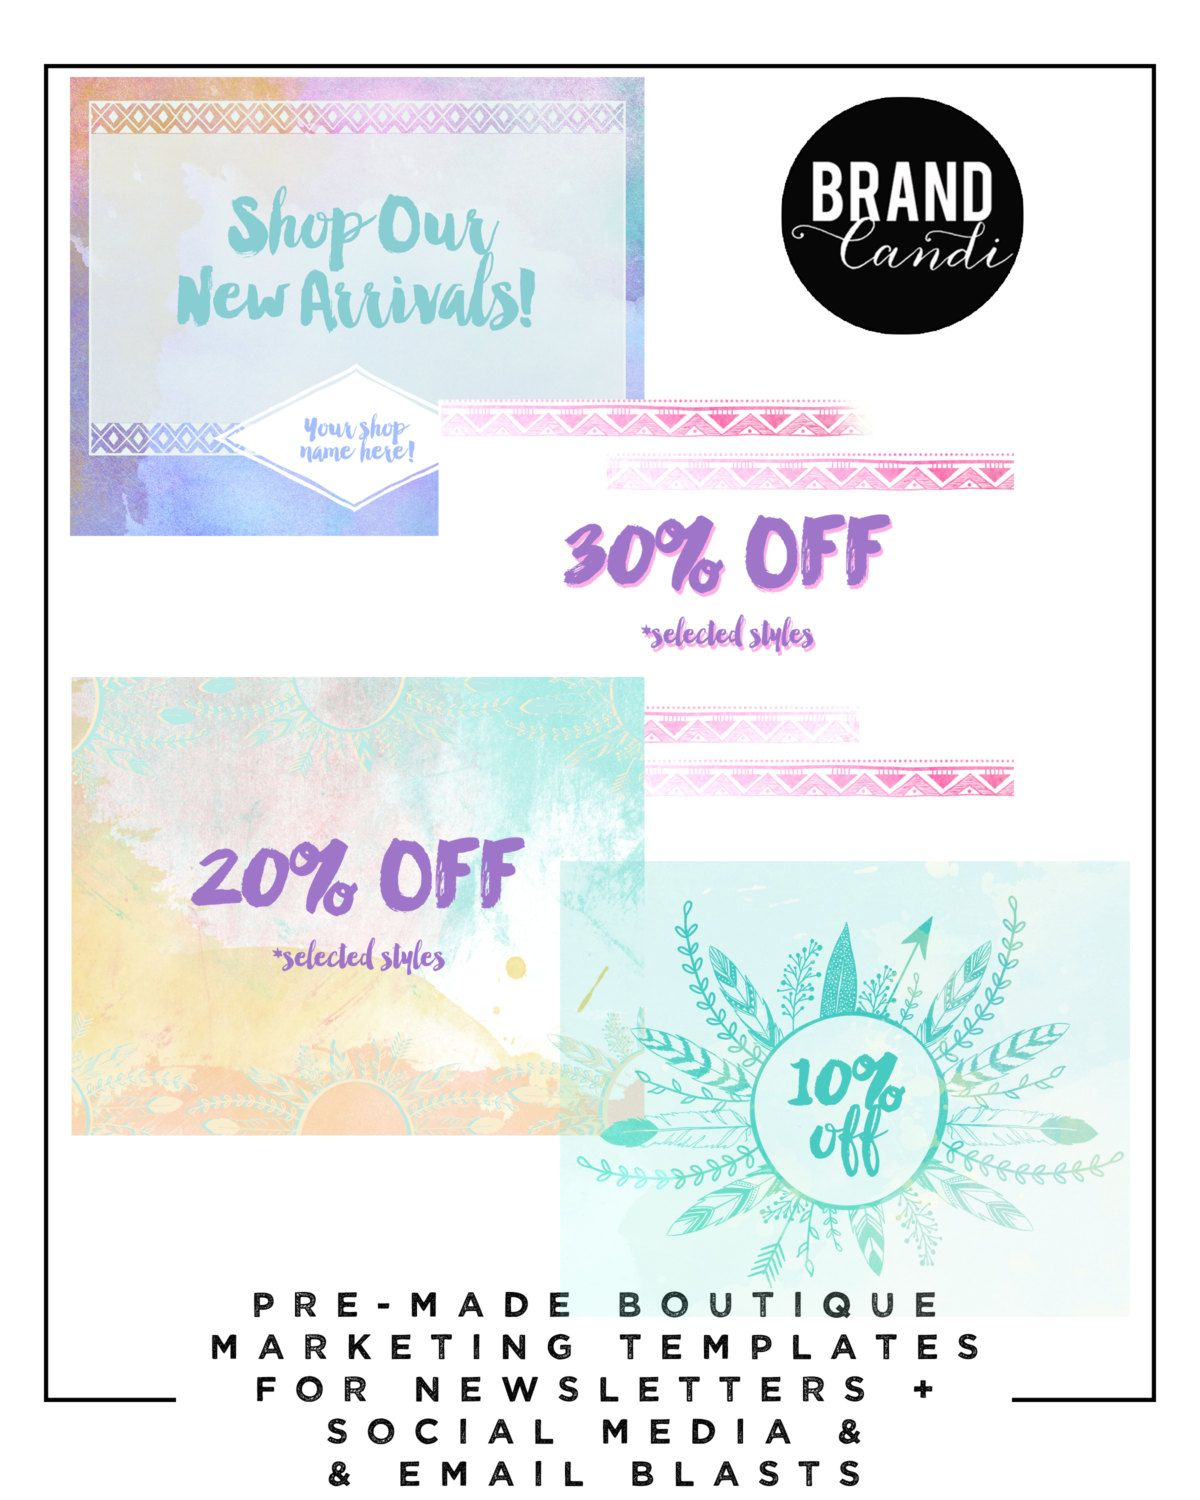 email blast template